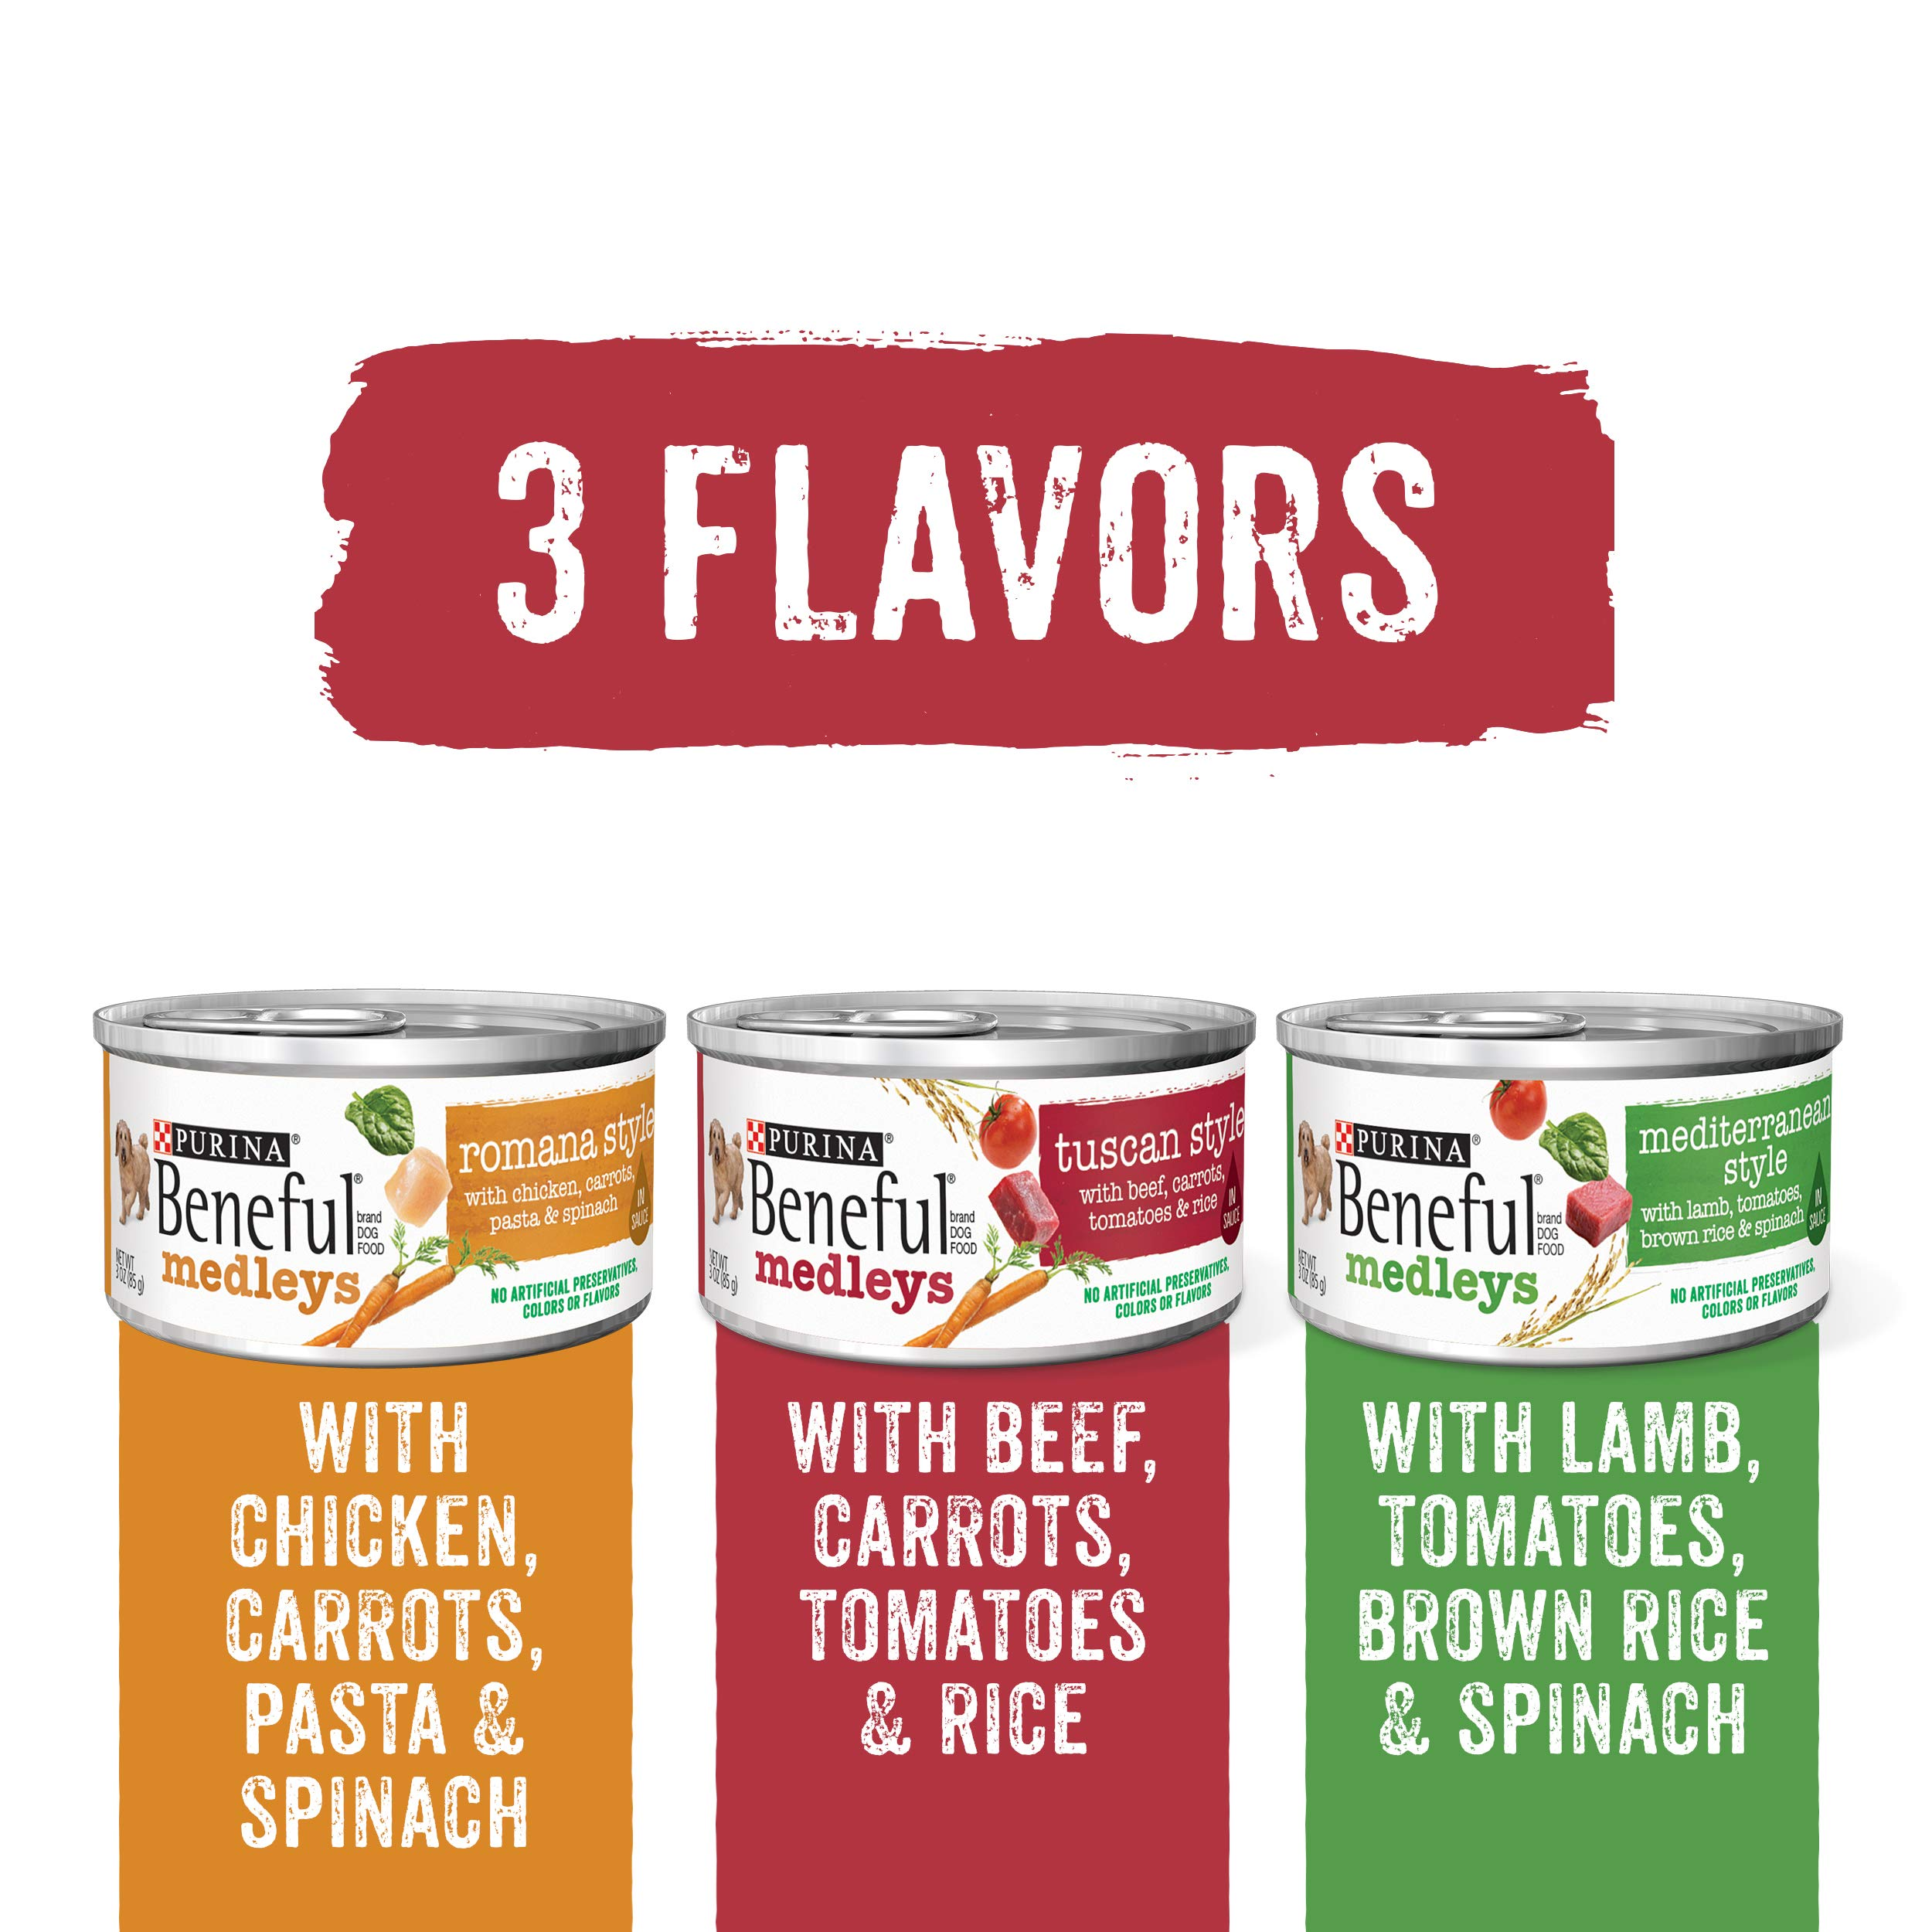 PACK OF 3 - Purina Beneful Medleys Variety Dog Food CT of 27, 3 oz. Cans by Purina Beneful